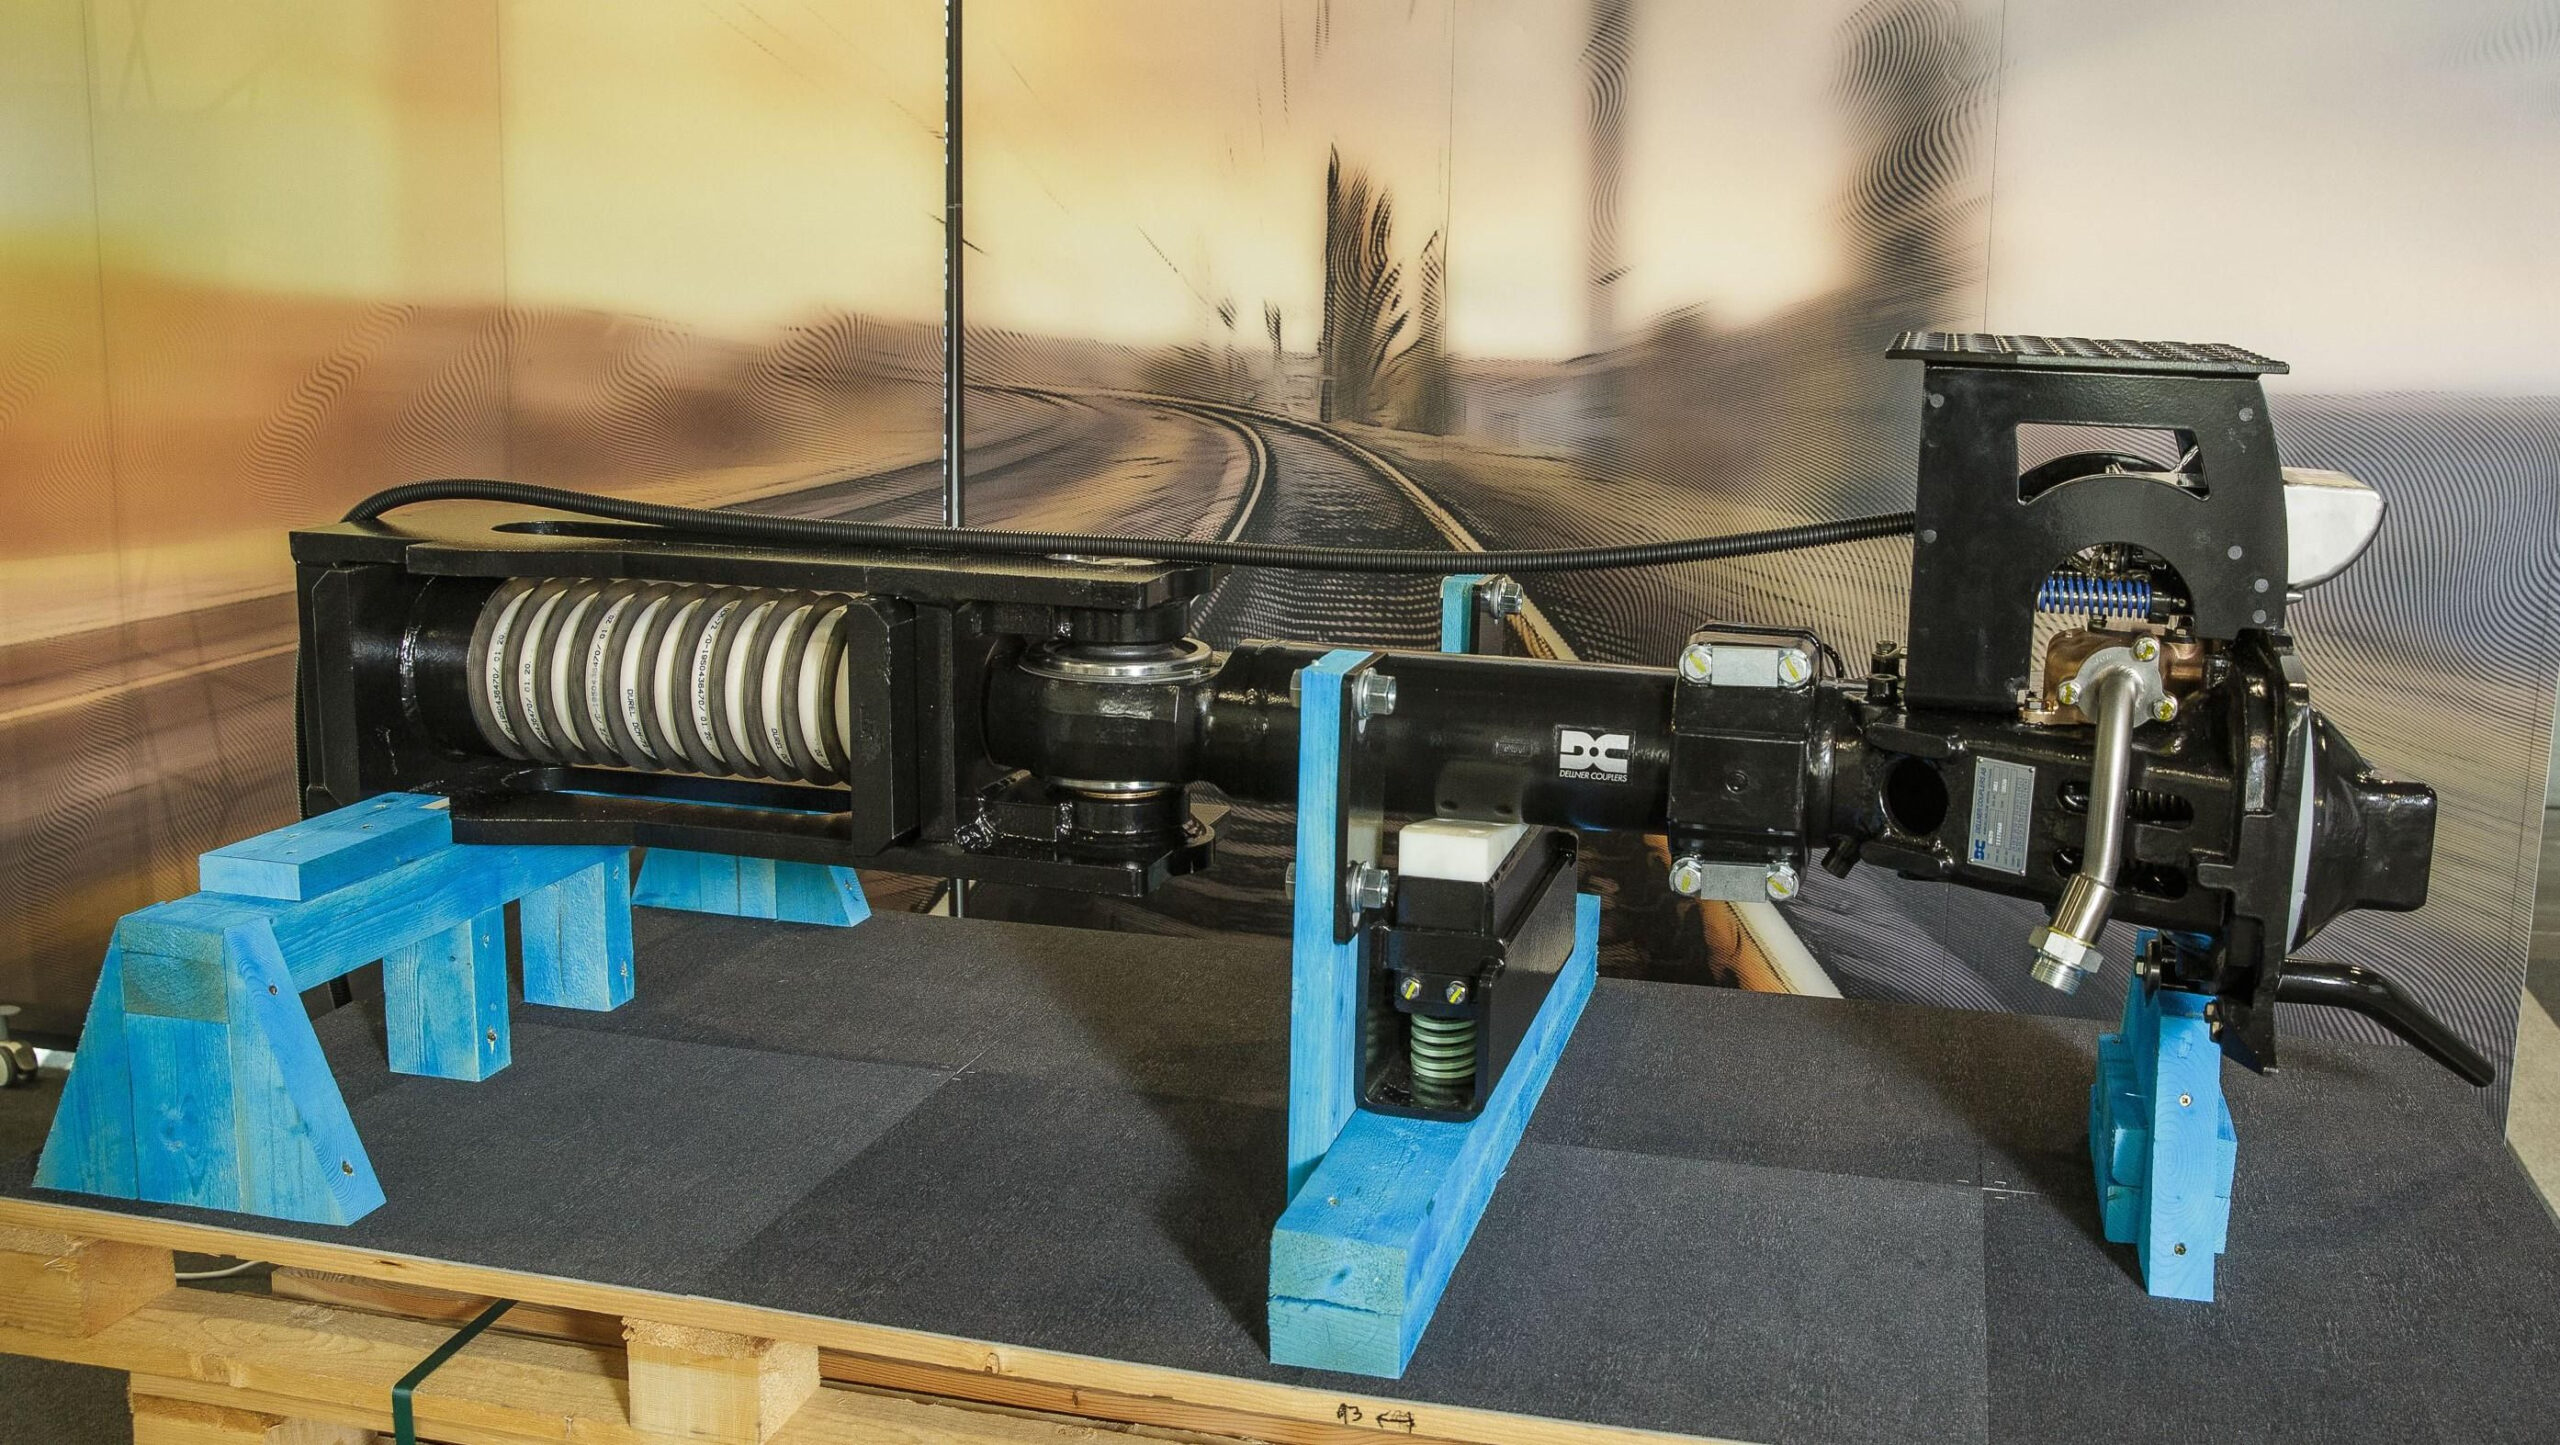 One of the four digital automatic coupling prototypes